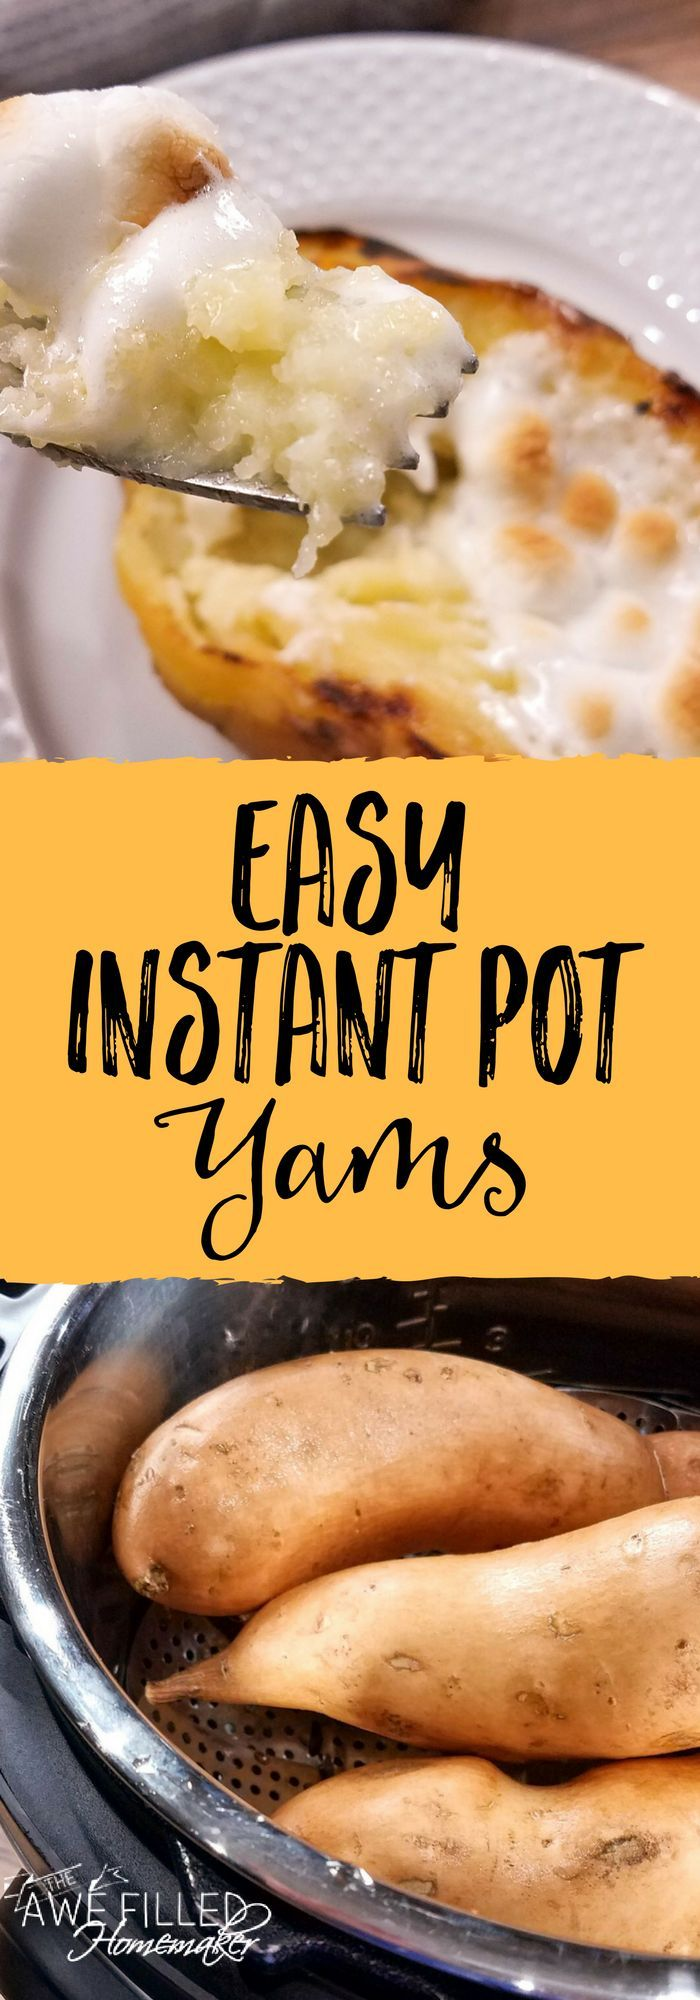 Sweet Potatoes, Yams & roots oh my! Wondering how to fix instant pot yams? Well never fear! I am sharing today a delicious recipe! Perfect for the holidays! #instantpot #instantpotrecipes #yams #instantpotyams via @AFHomemaker